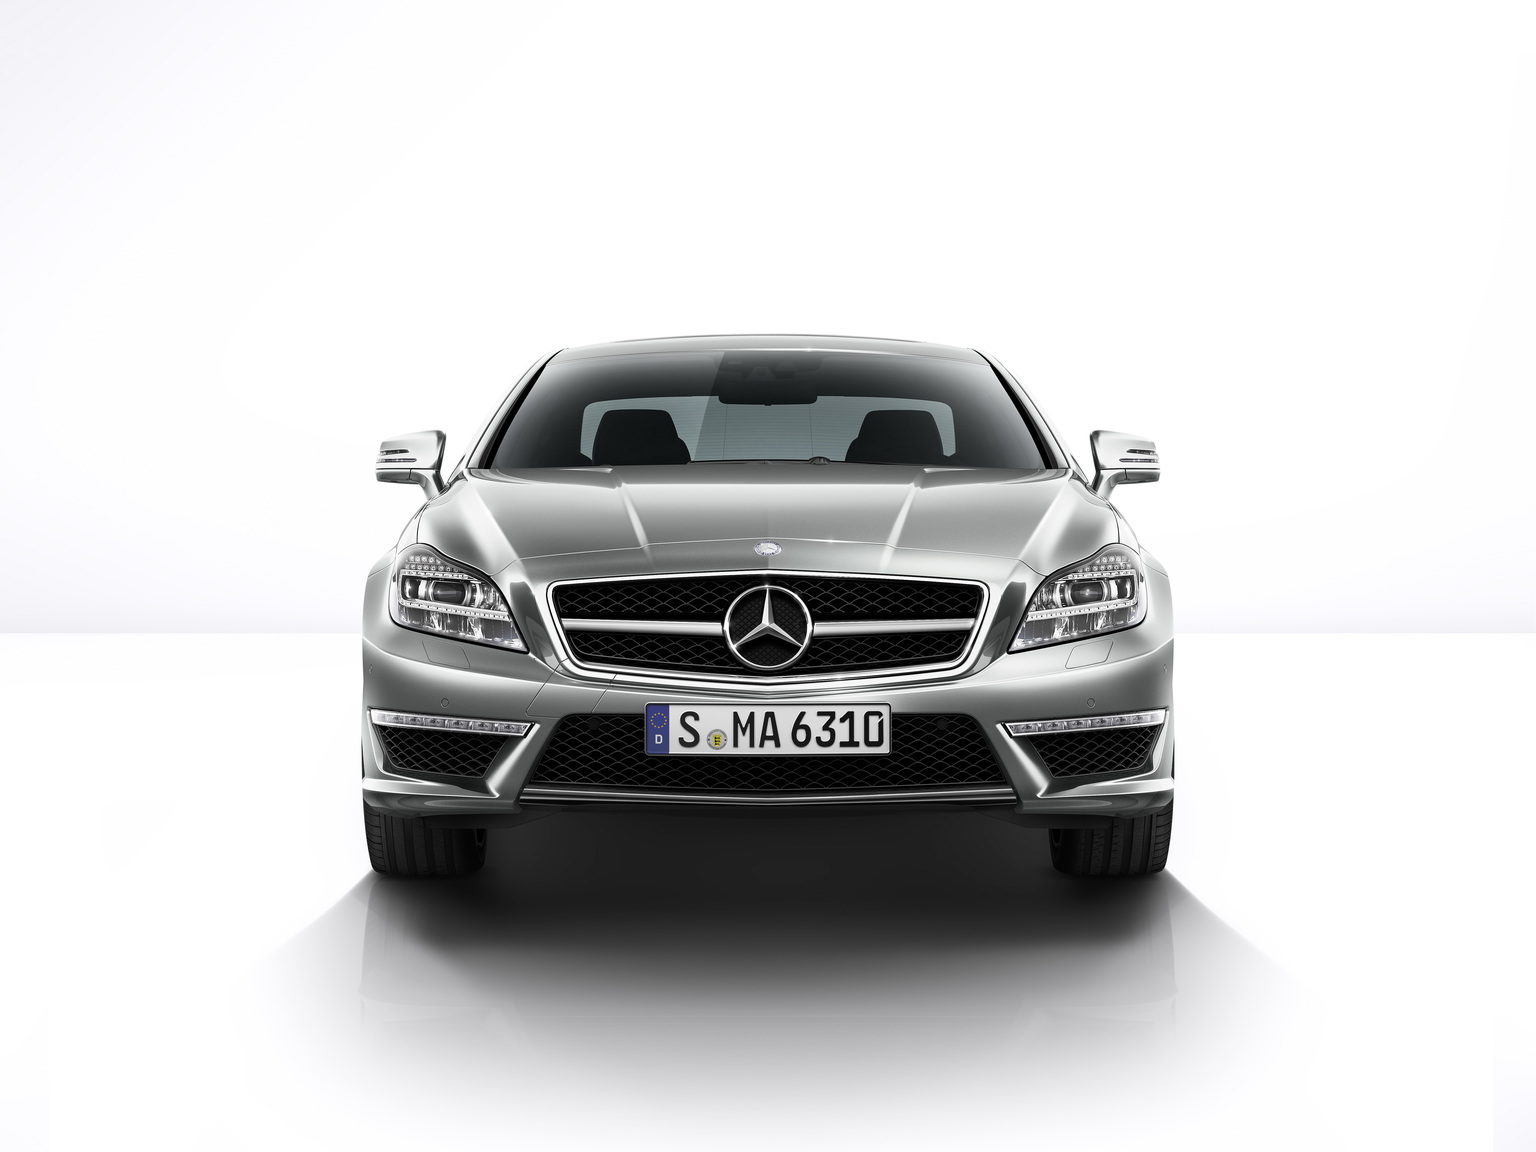 2013 mercedes benz cls 63 amg 4matic. Black Bedroom Furniture Sets. Home Design Ideas